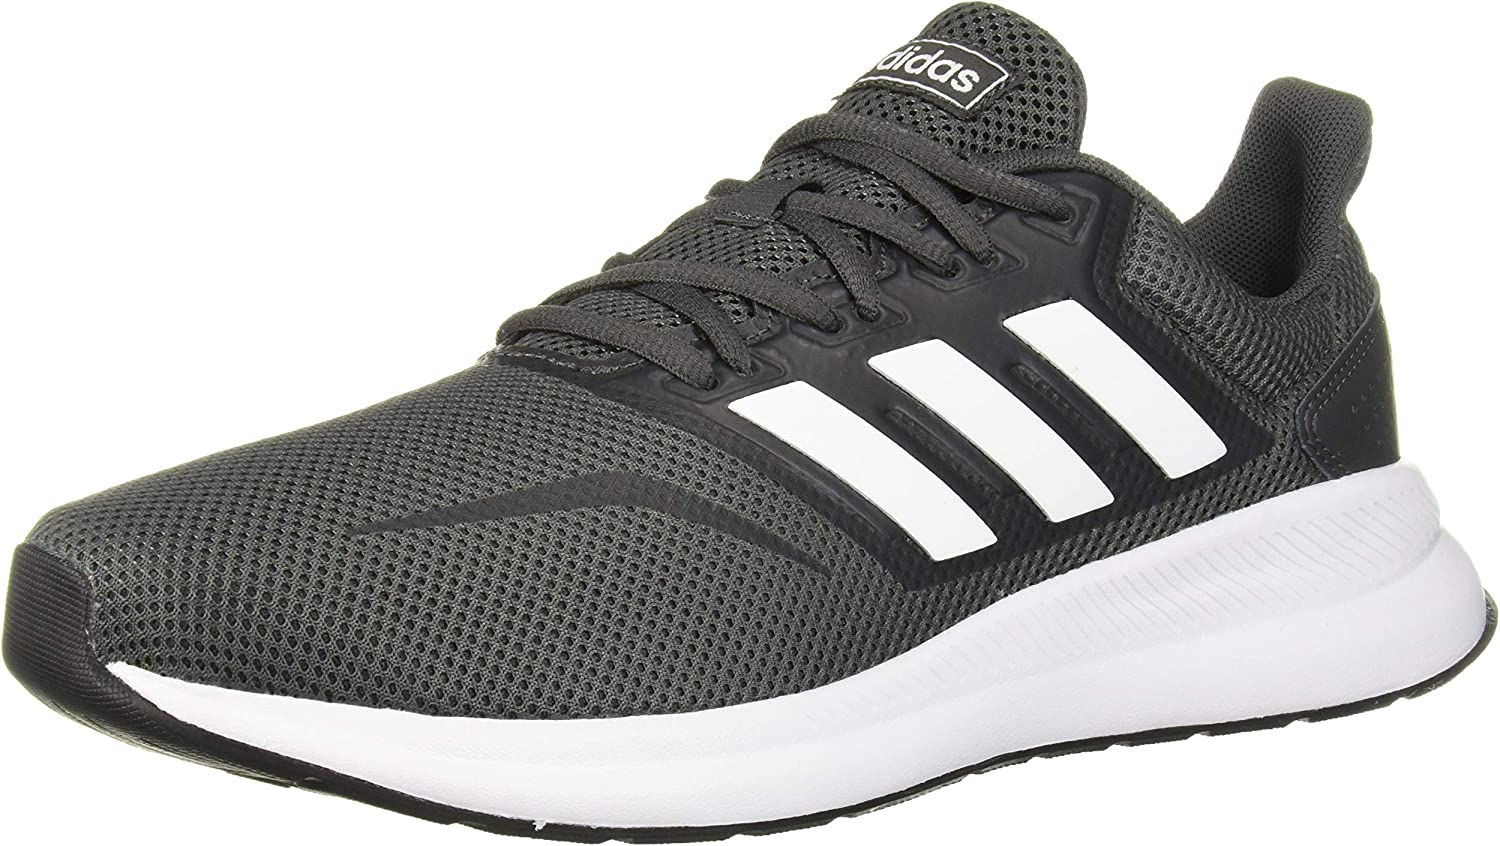 b33756c1735 Adidas Runfalcon Running shoes Wide Men's nntywn5302-Sporting goods ...